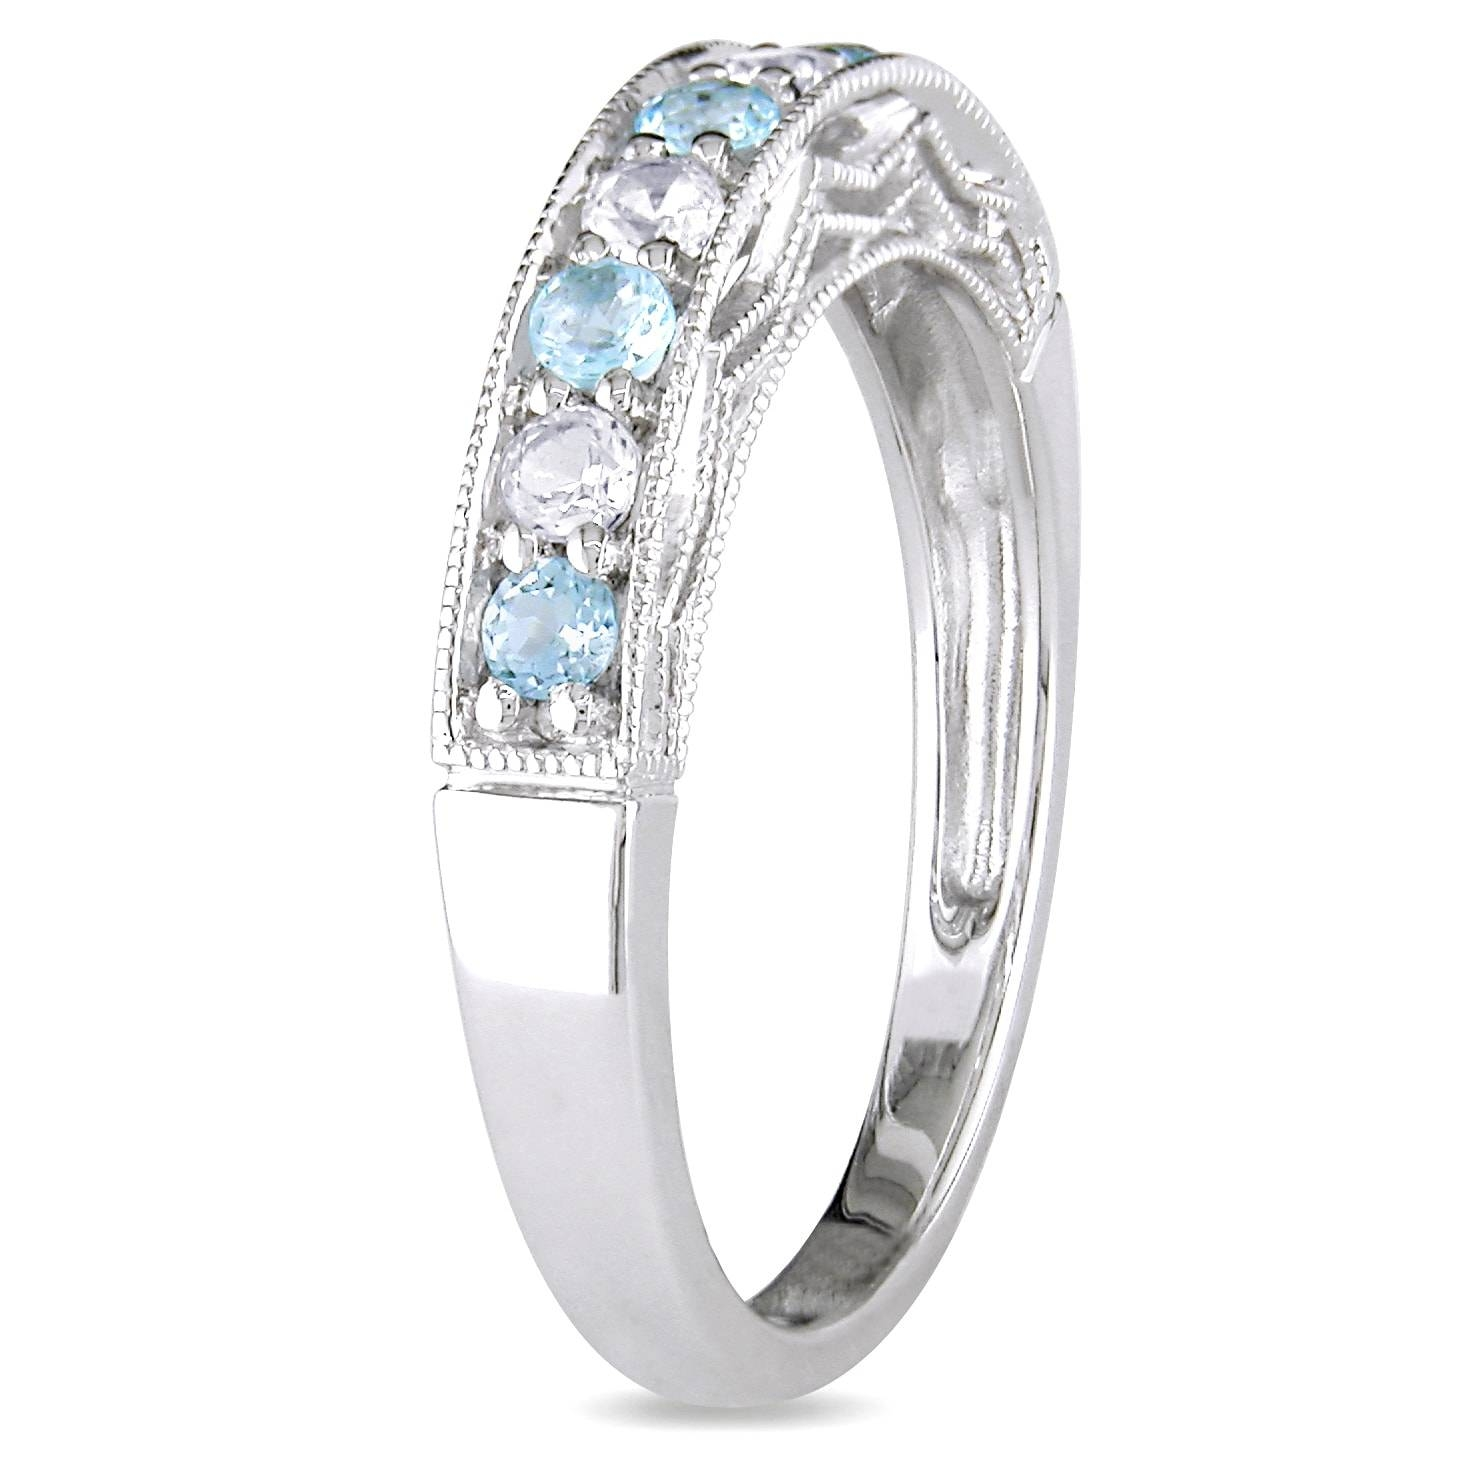 Miadora Sterling Silver White Sapphire And Gemstone Stackable Pertaining To Most Popular Stackable Anniversary Rings (View 8 of 25)